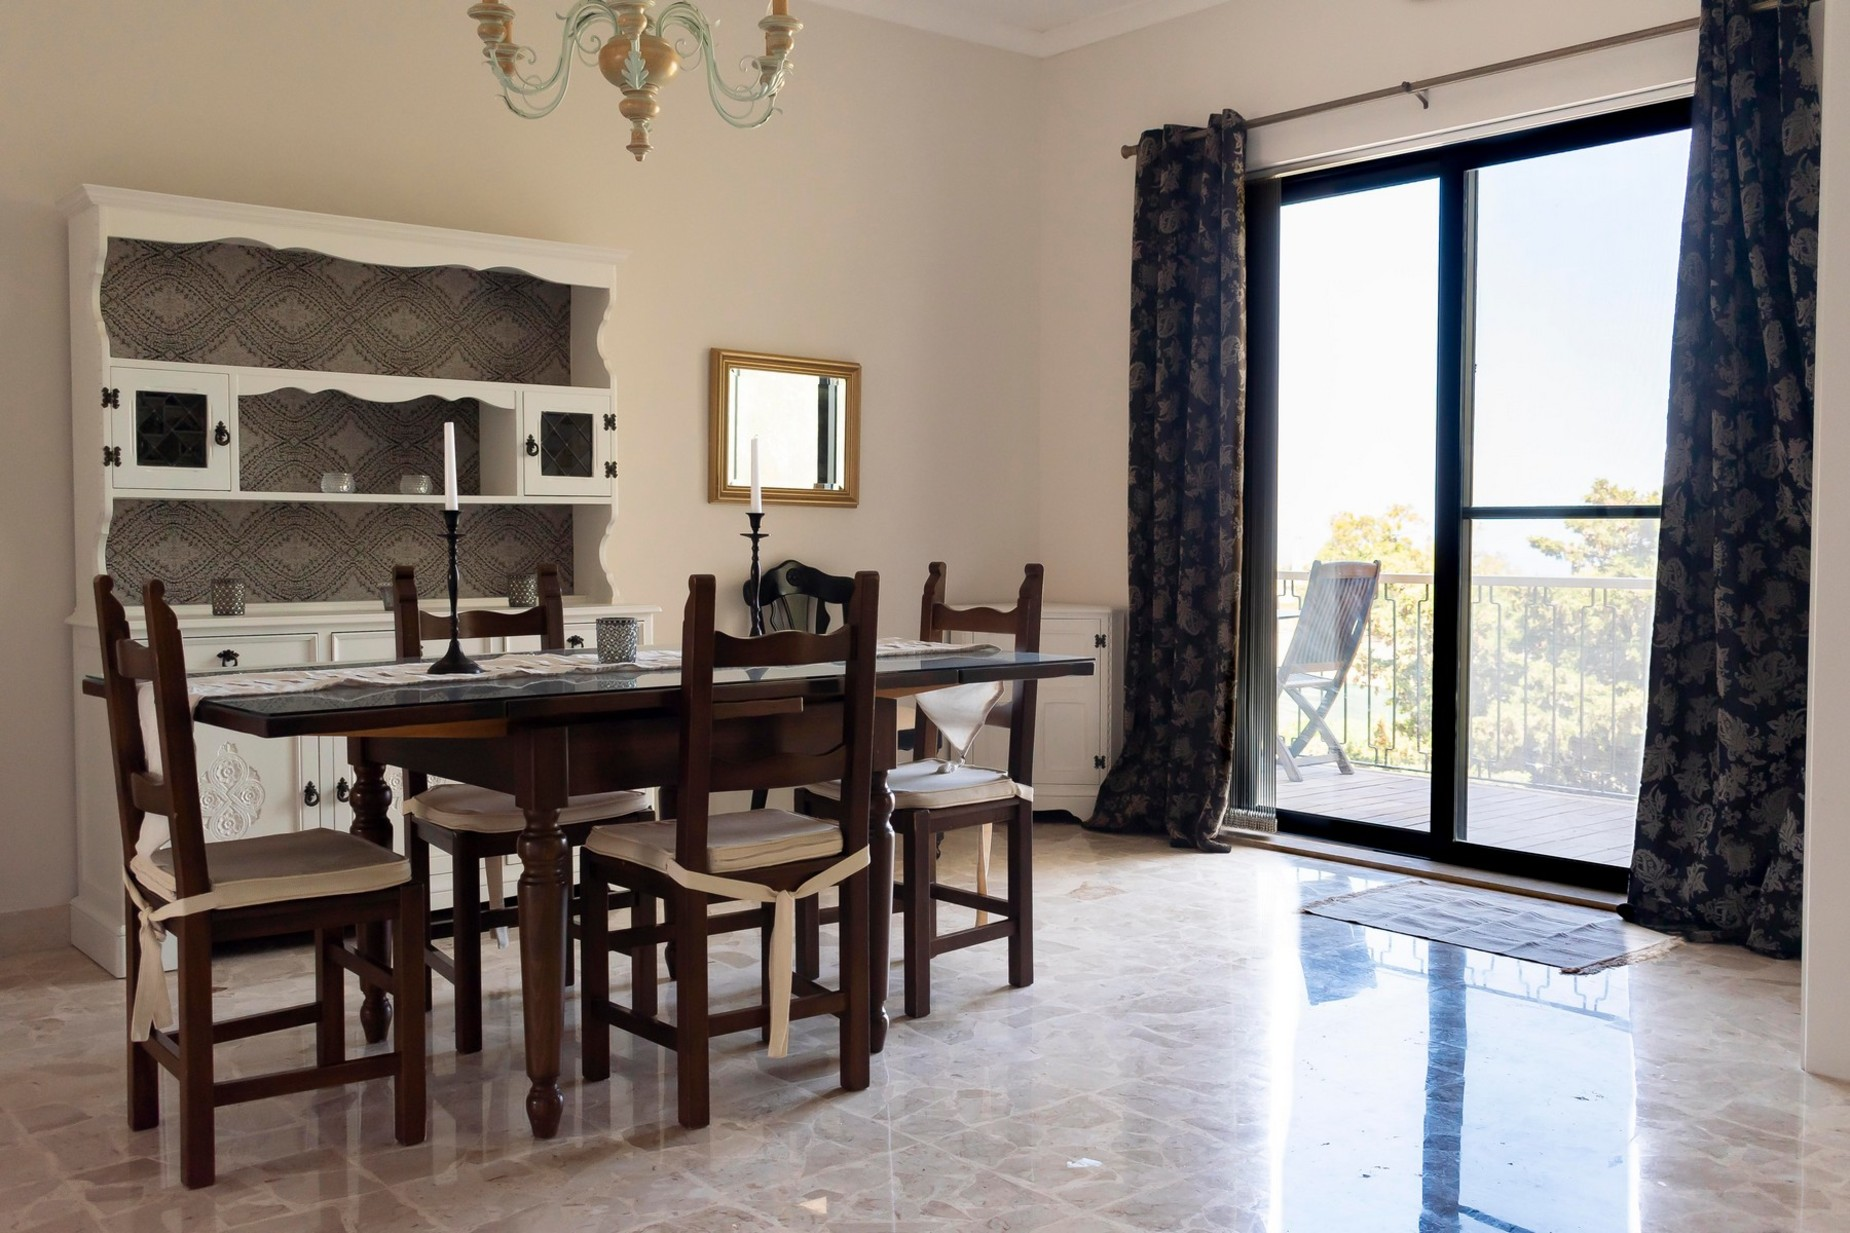 2 bed Apartment For Rent in Ibragg, Ibragg - thumb 10